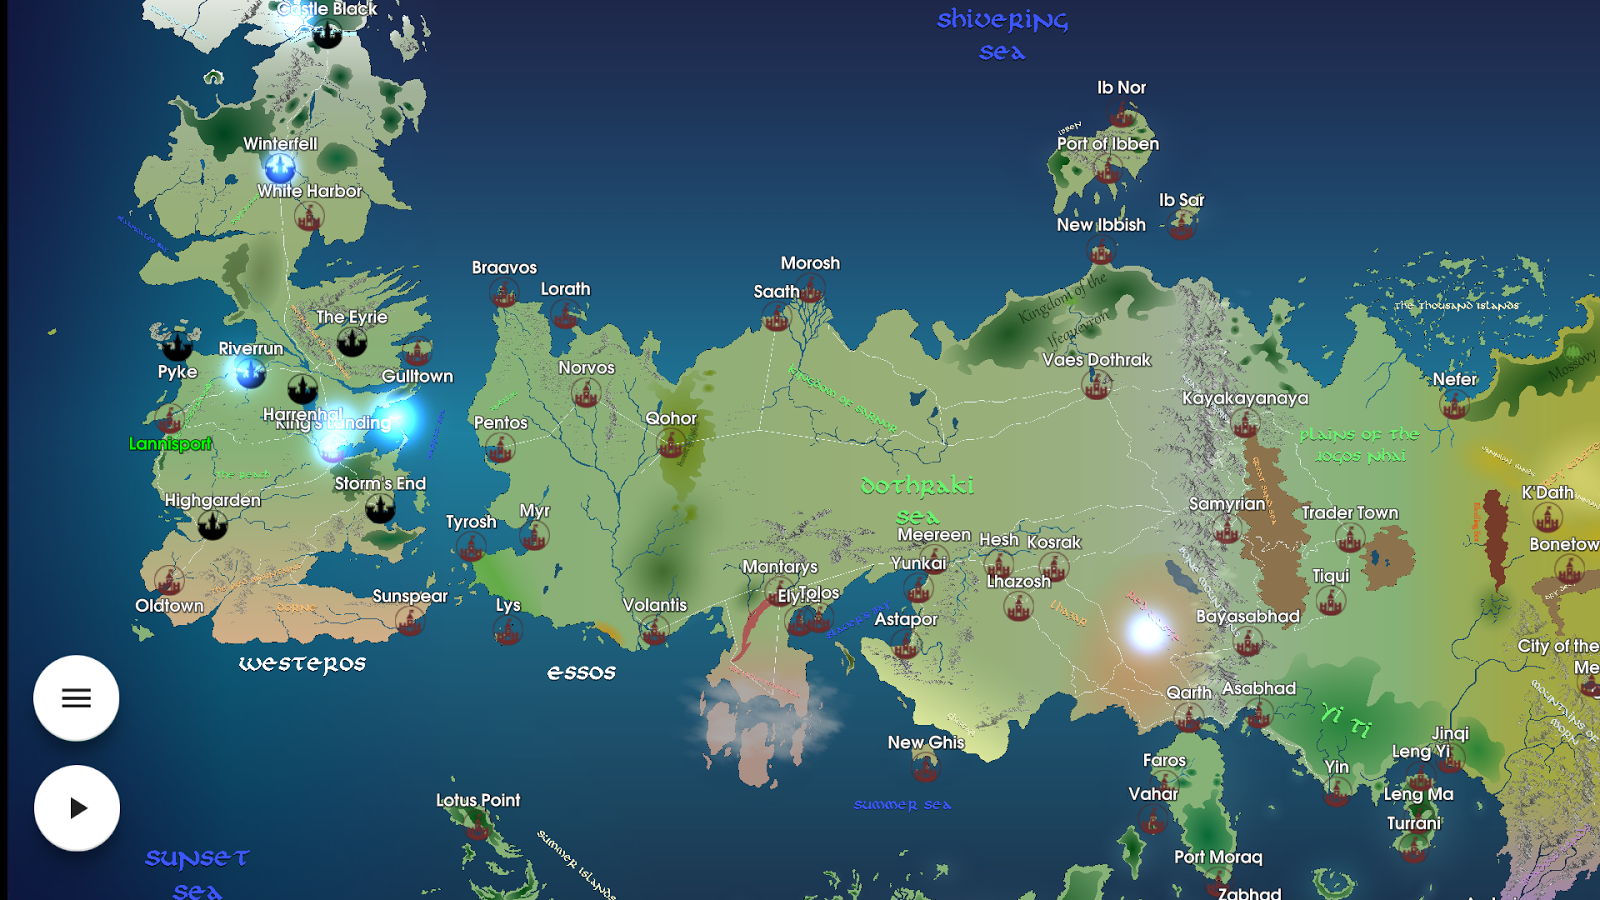 Map for game of thrones android apps on google play map for game of thrones screenshot gumiabroncs Image collections